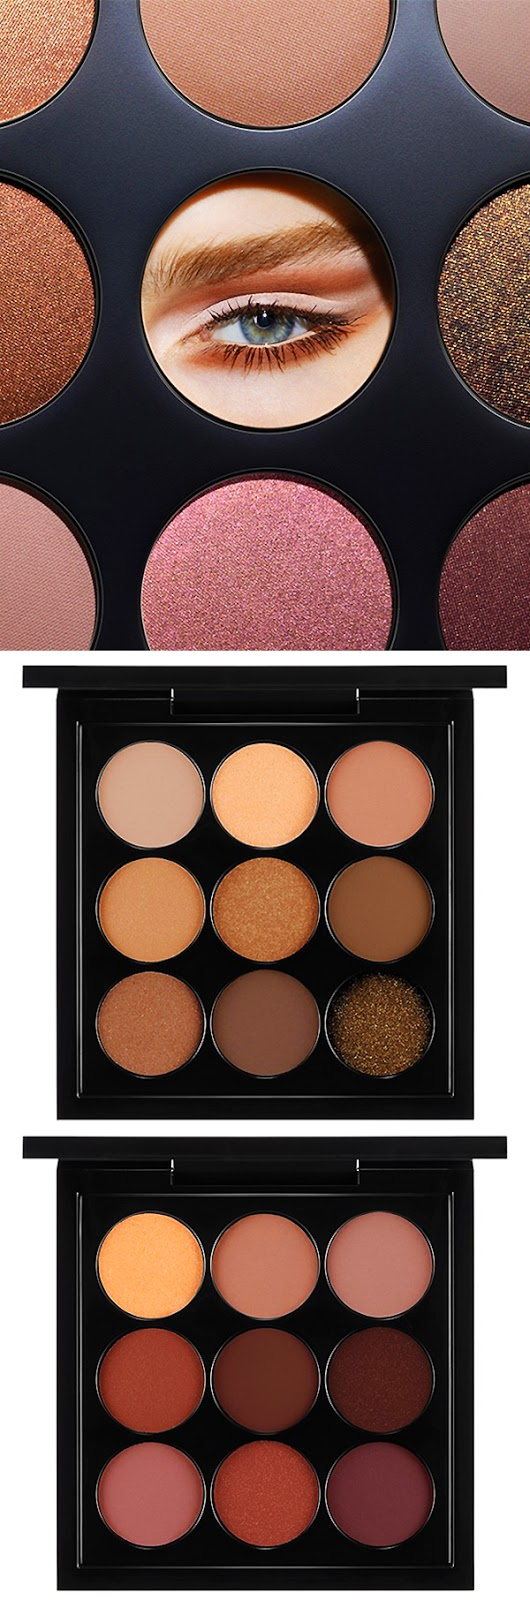 Mac color story collections face charts mac eyes on mac march 2015 mac eyes on mac march 2015 nvjuhfo Gallery